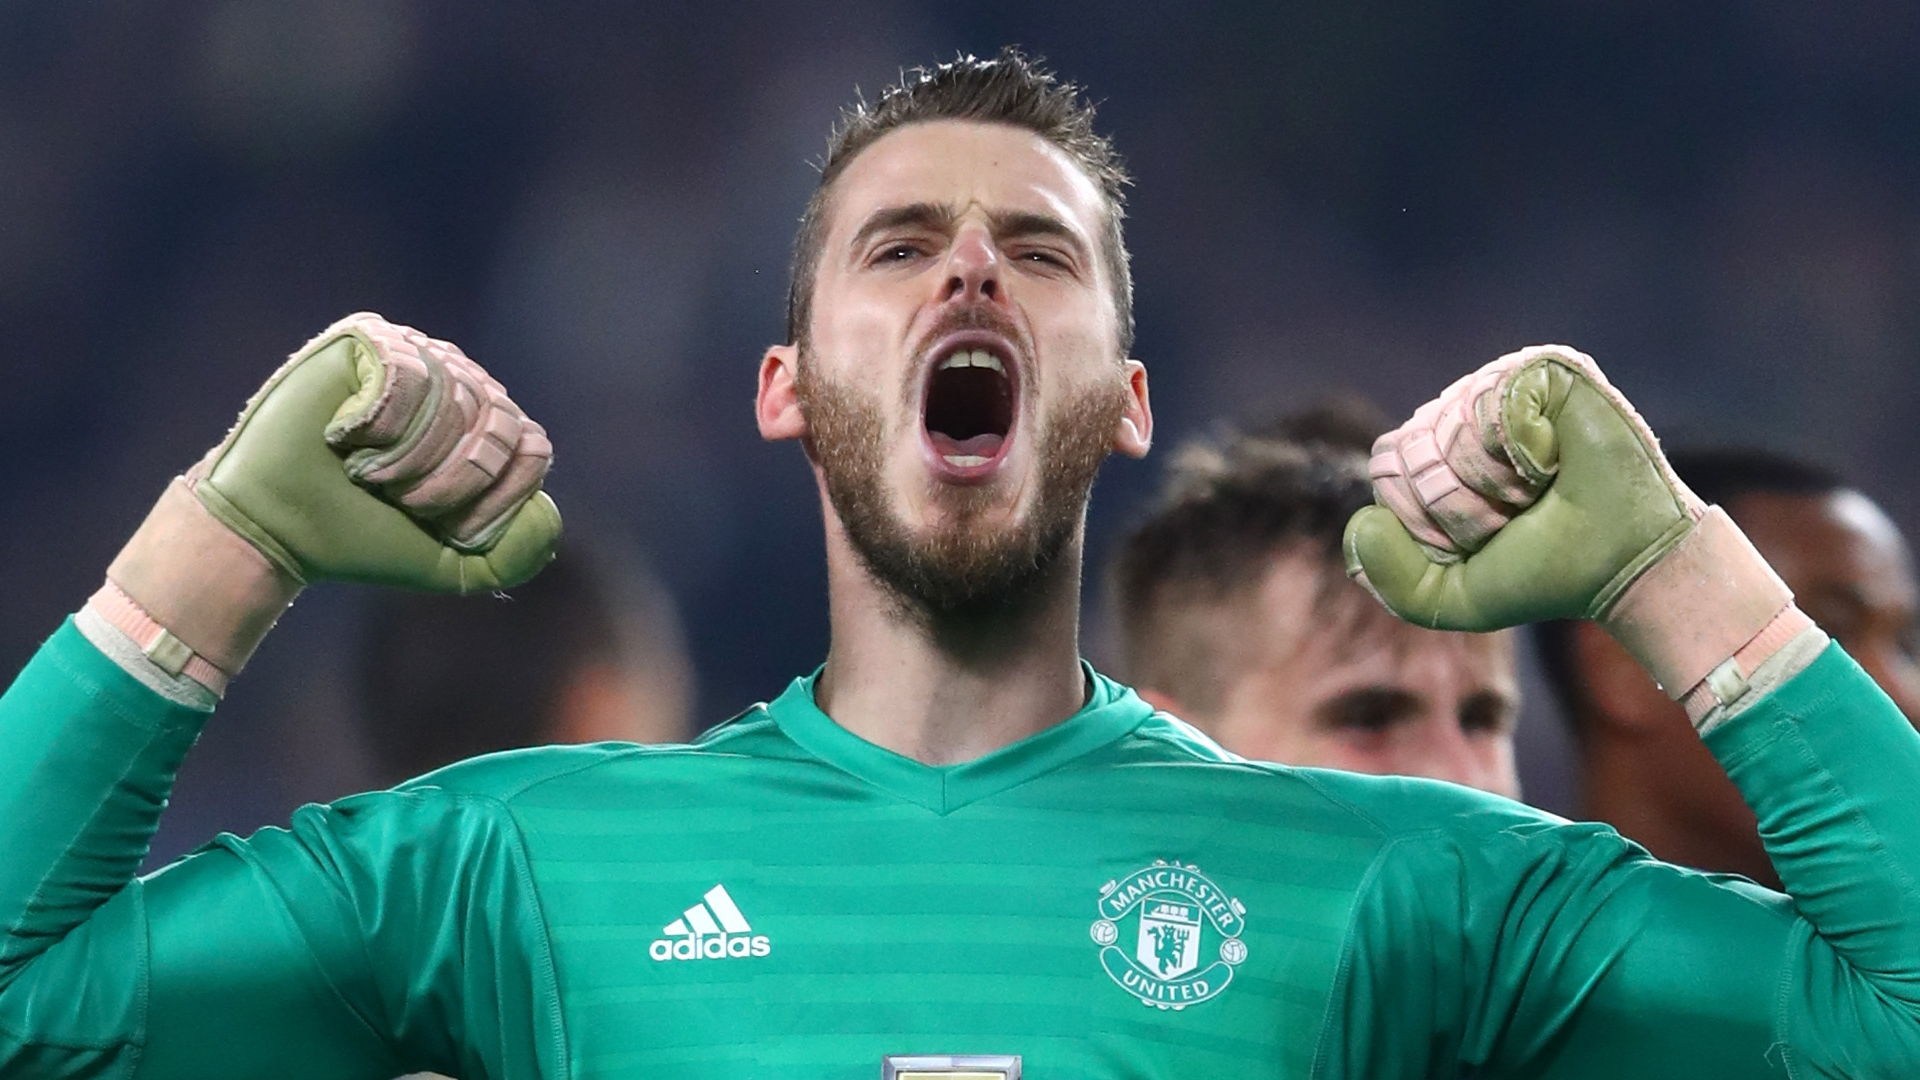 Transfer news and rumours LIVE  De Gea set to sign record Man Utd deal  f889a0b0c95